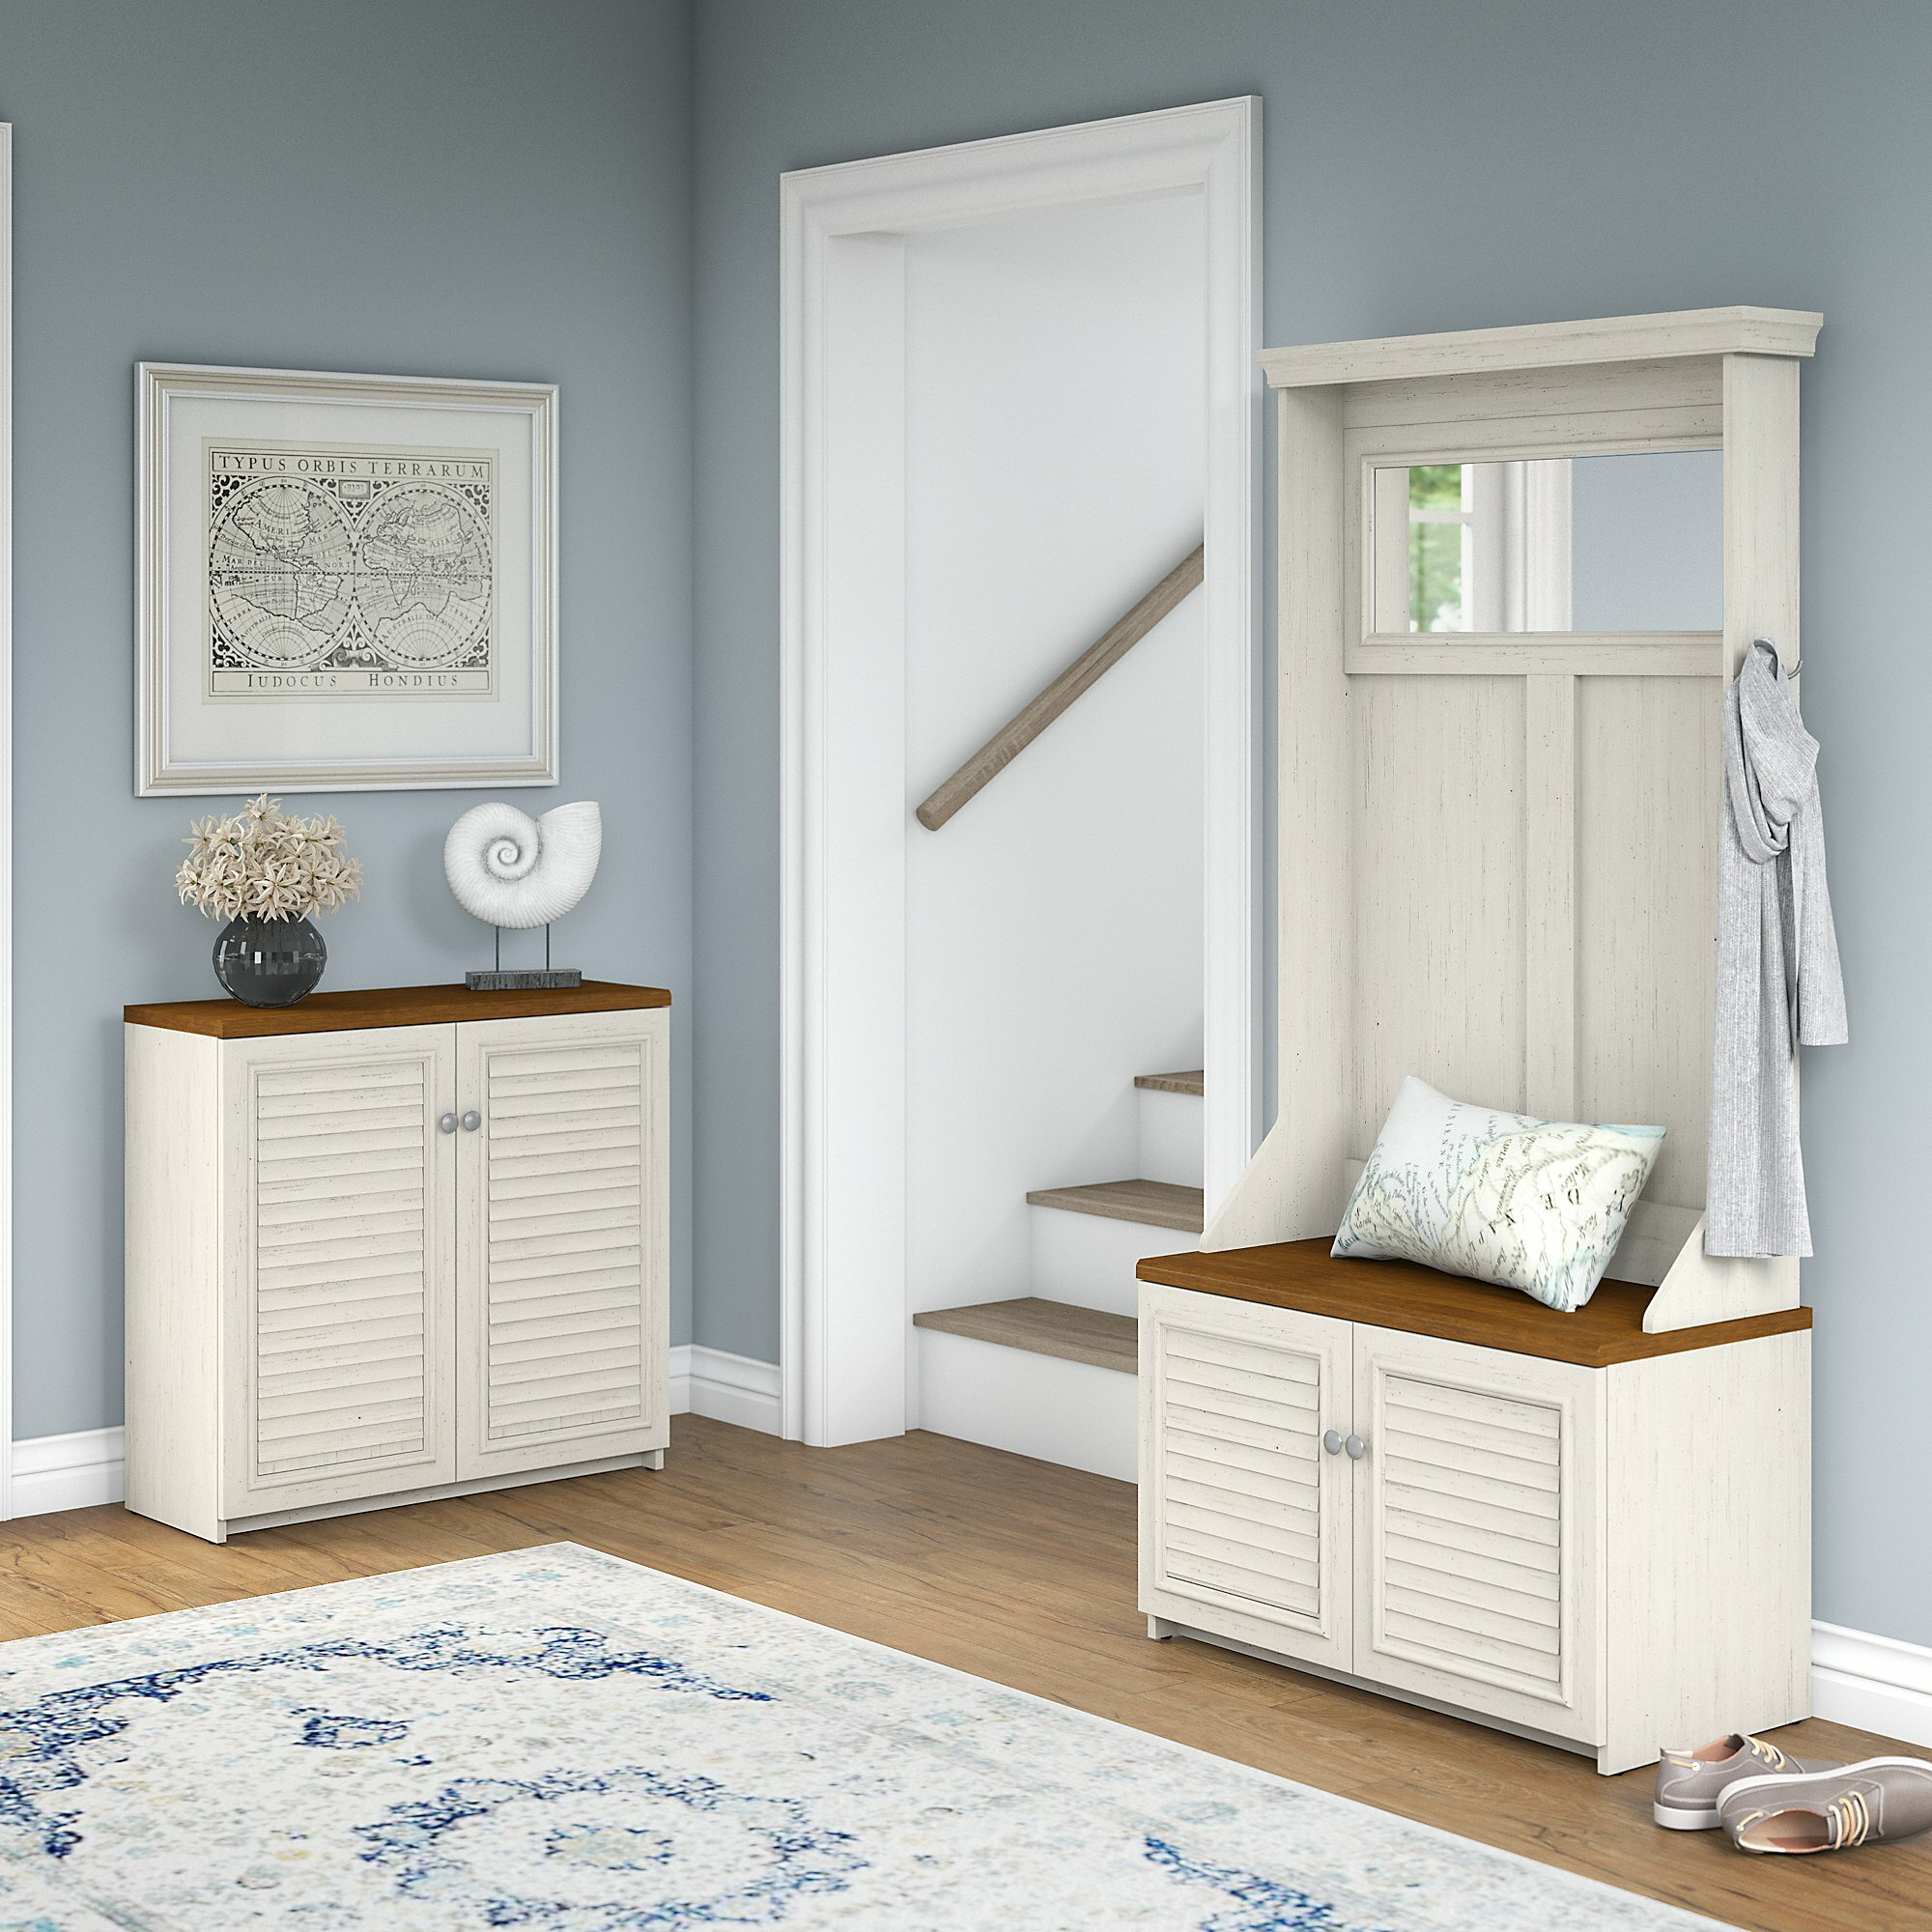 Bon Fairview Entryway Storage Set With Hall Tree, Shoe Bench And Accent Cabinet